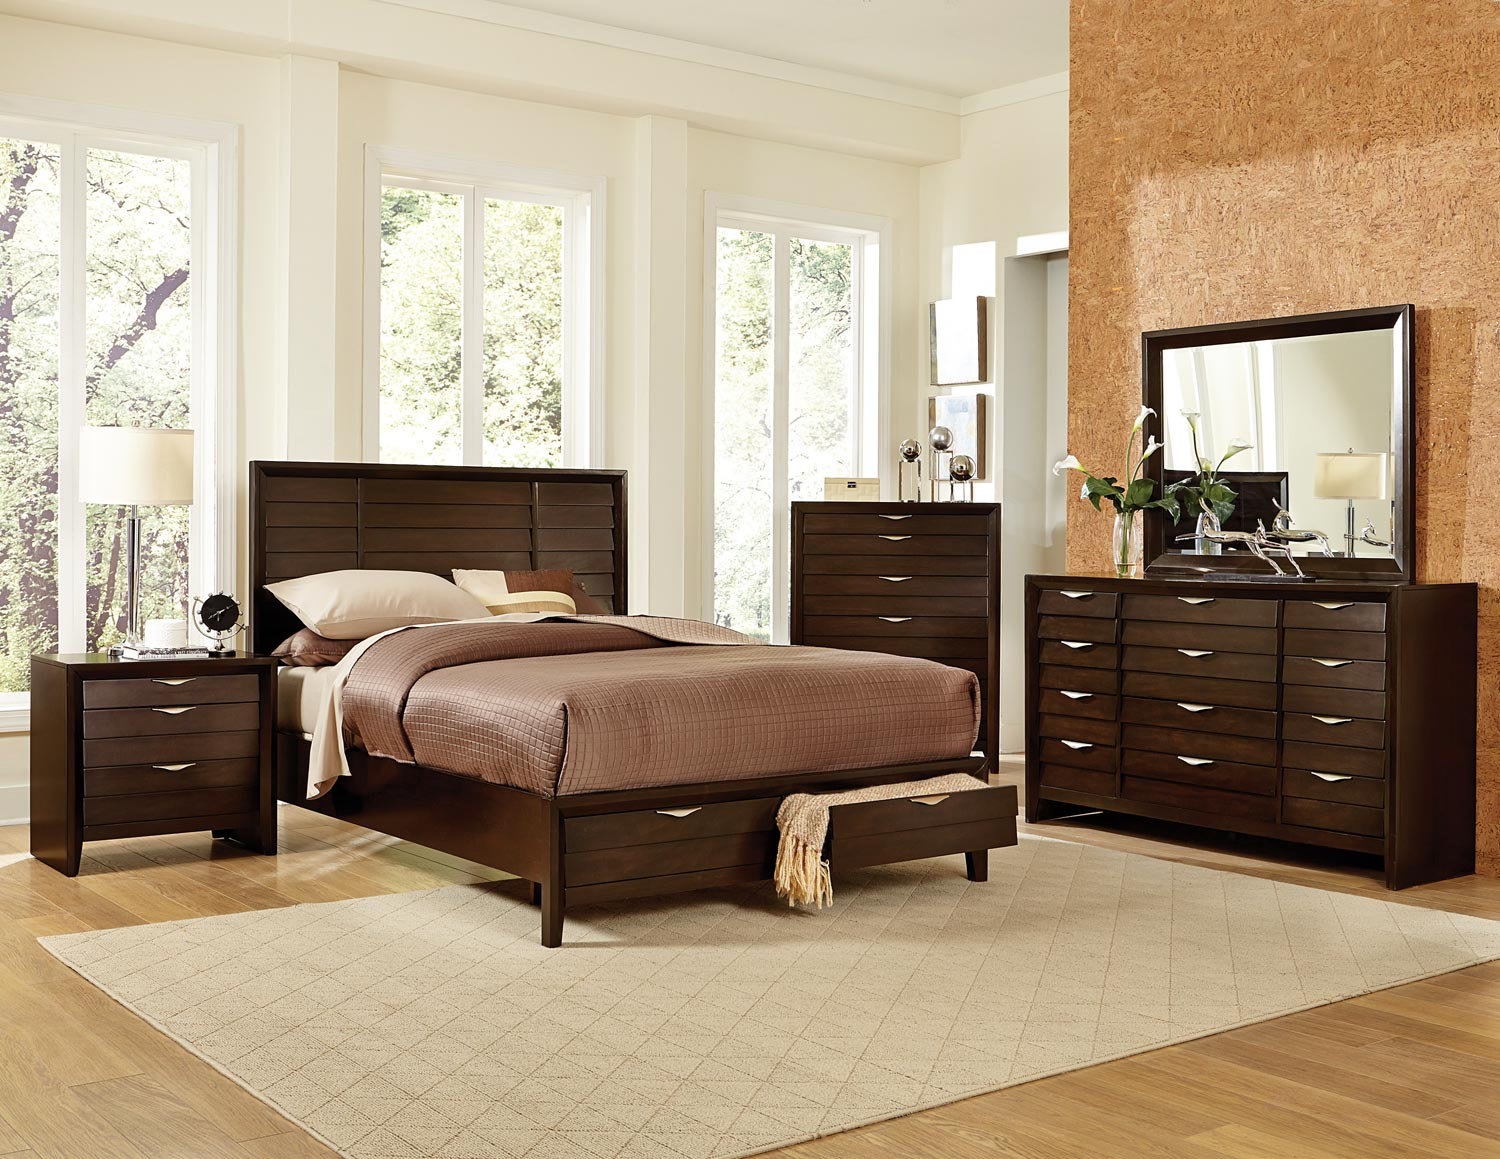 Bedroom Sets Espresso homelegance arezzo platform storage bedroom set - espresso b1849-1